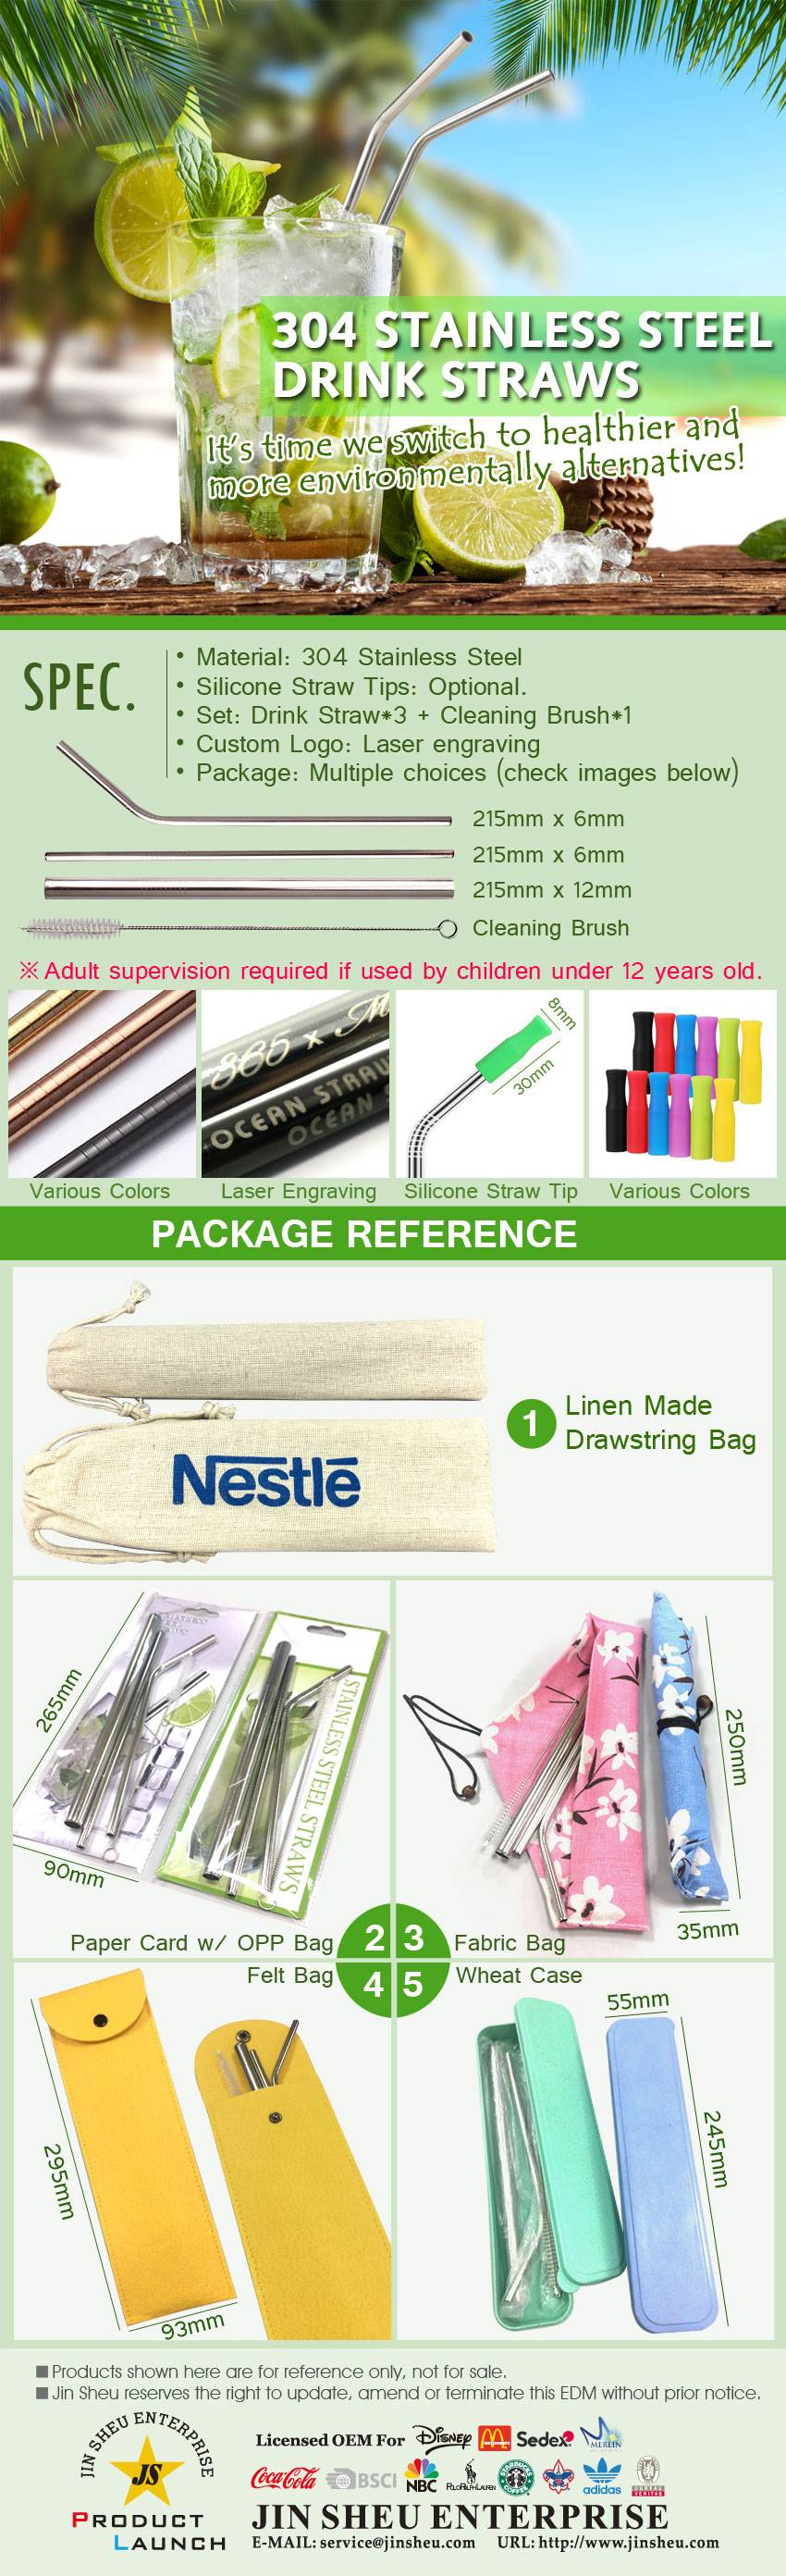 Promotional Stainless Steel Drink Straws